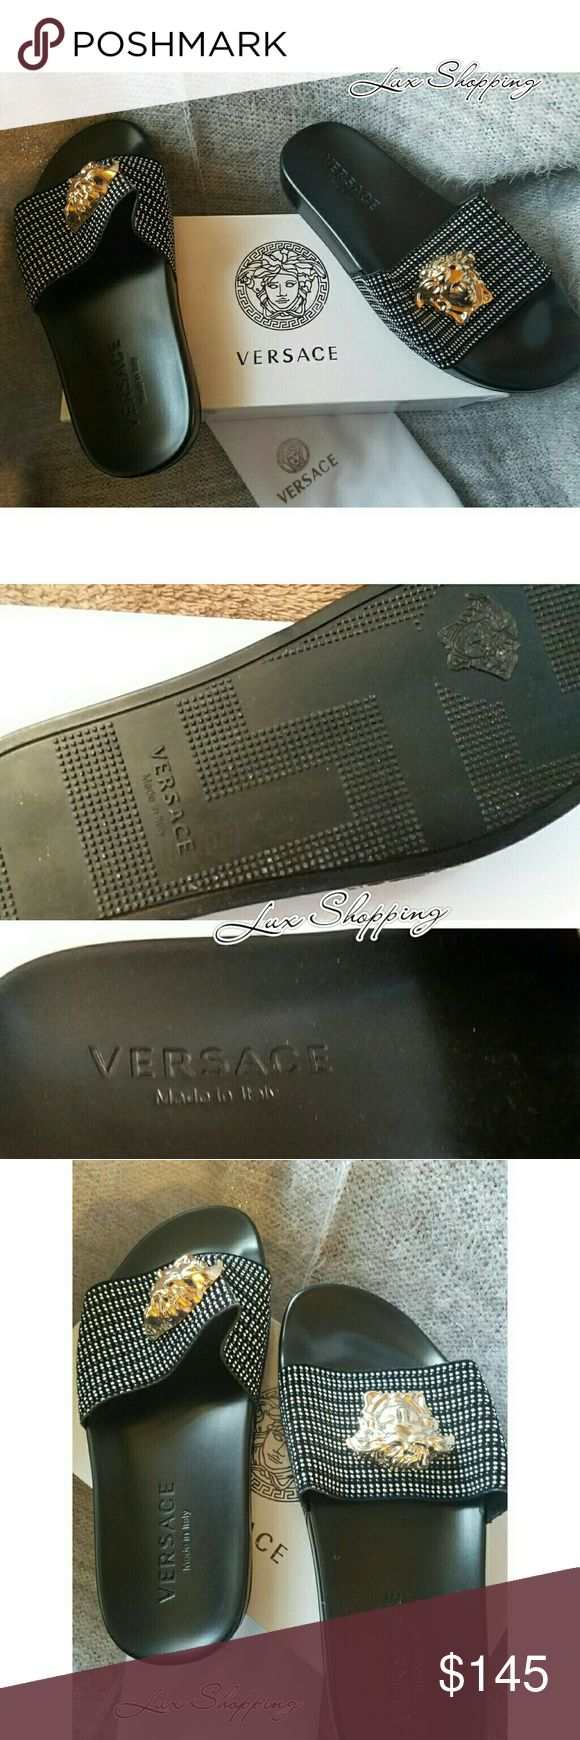 |SALE|  VERSACE MULE SLIP SANDAL |SALE|  VERSACE MULE SLIP SANDAL Summer is here, are you ready! Mix white & black custom slides Signature Gold Medusa finishing touches Rubber upper /Rubber sole  BRAND NEW  Made in Italy (Run slightly big order down a size) Versace Shoes Sandals